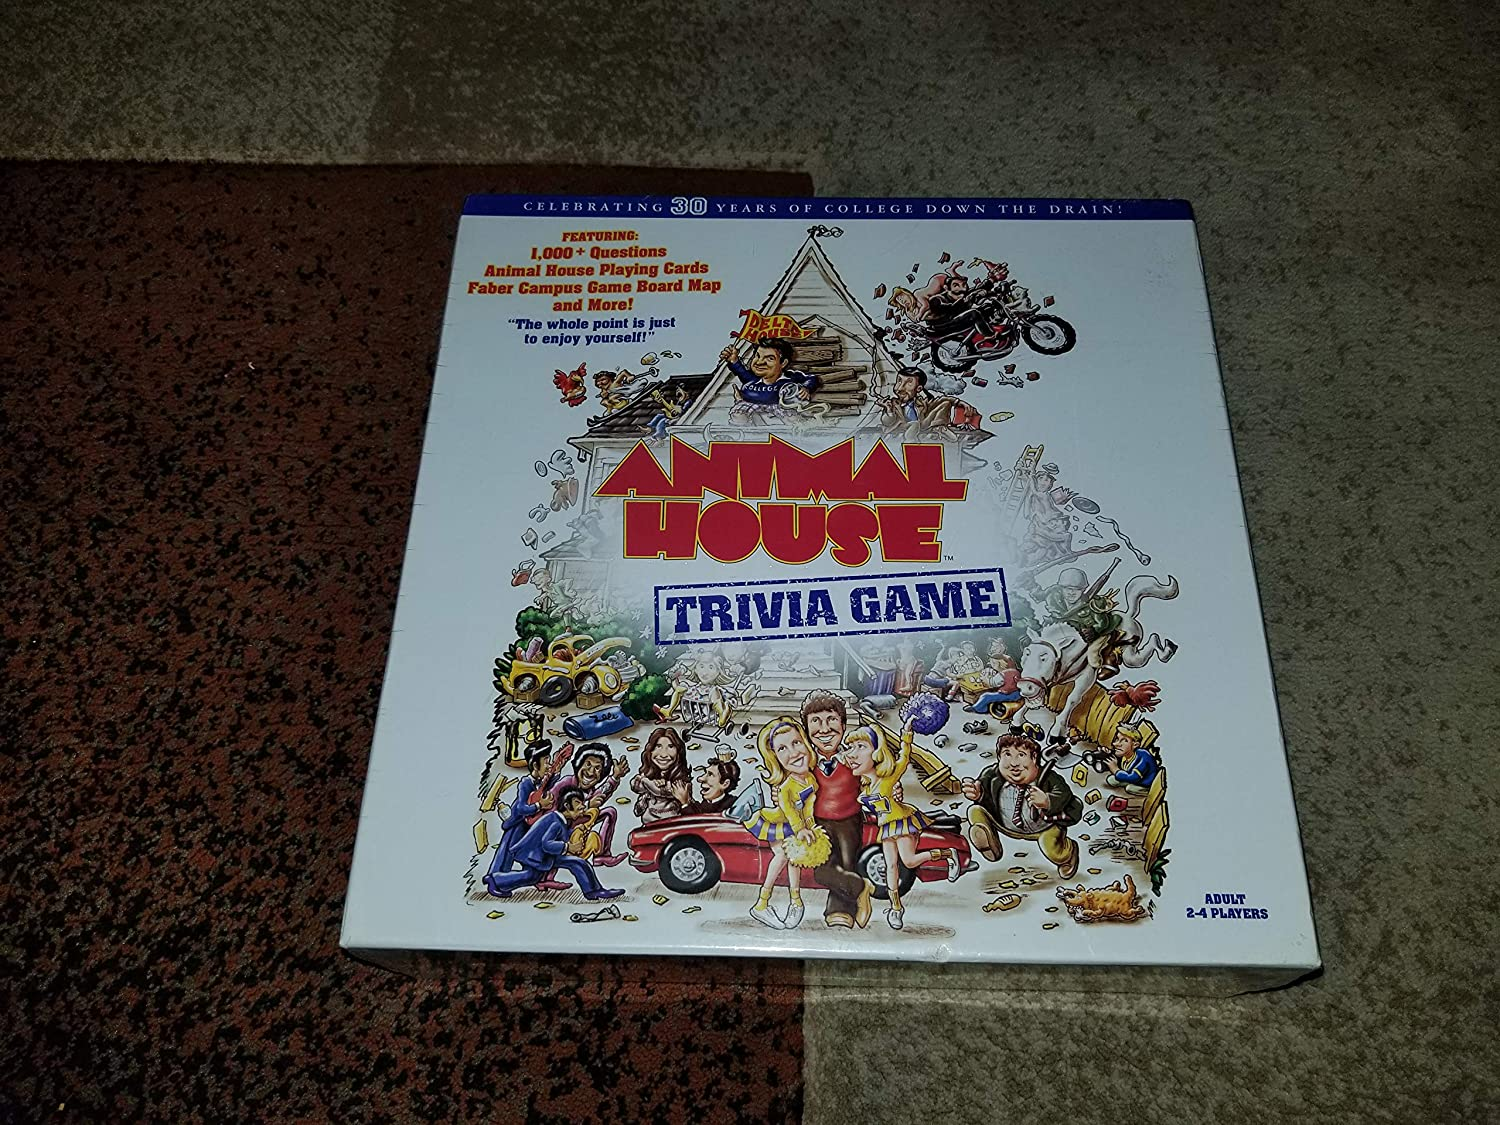 Animal House Trivia Game by USAopoly B00U205CQK Innovation | Nicht so teuer